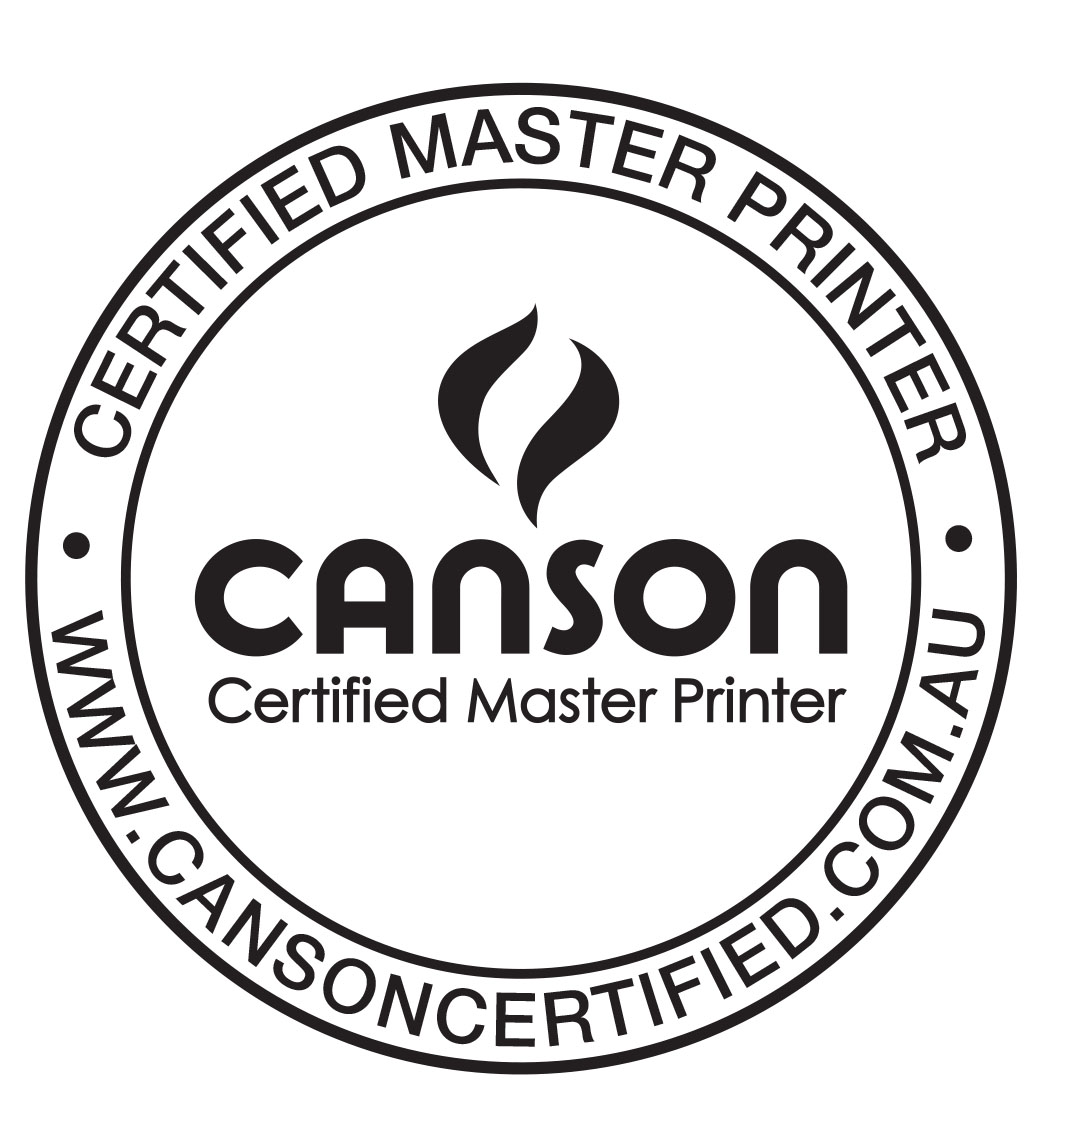 Canson-Certified.jpg